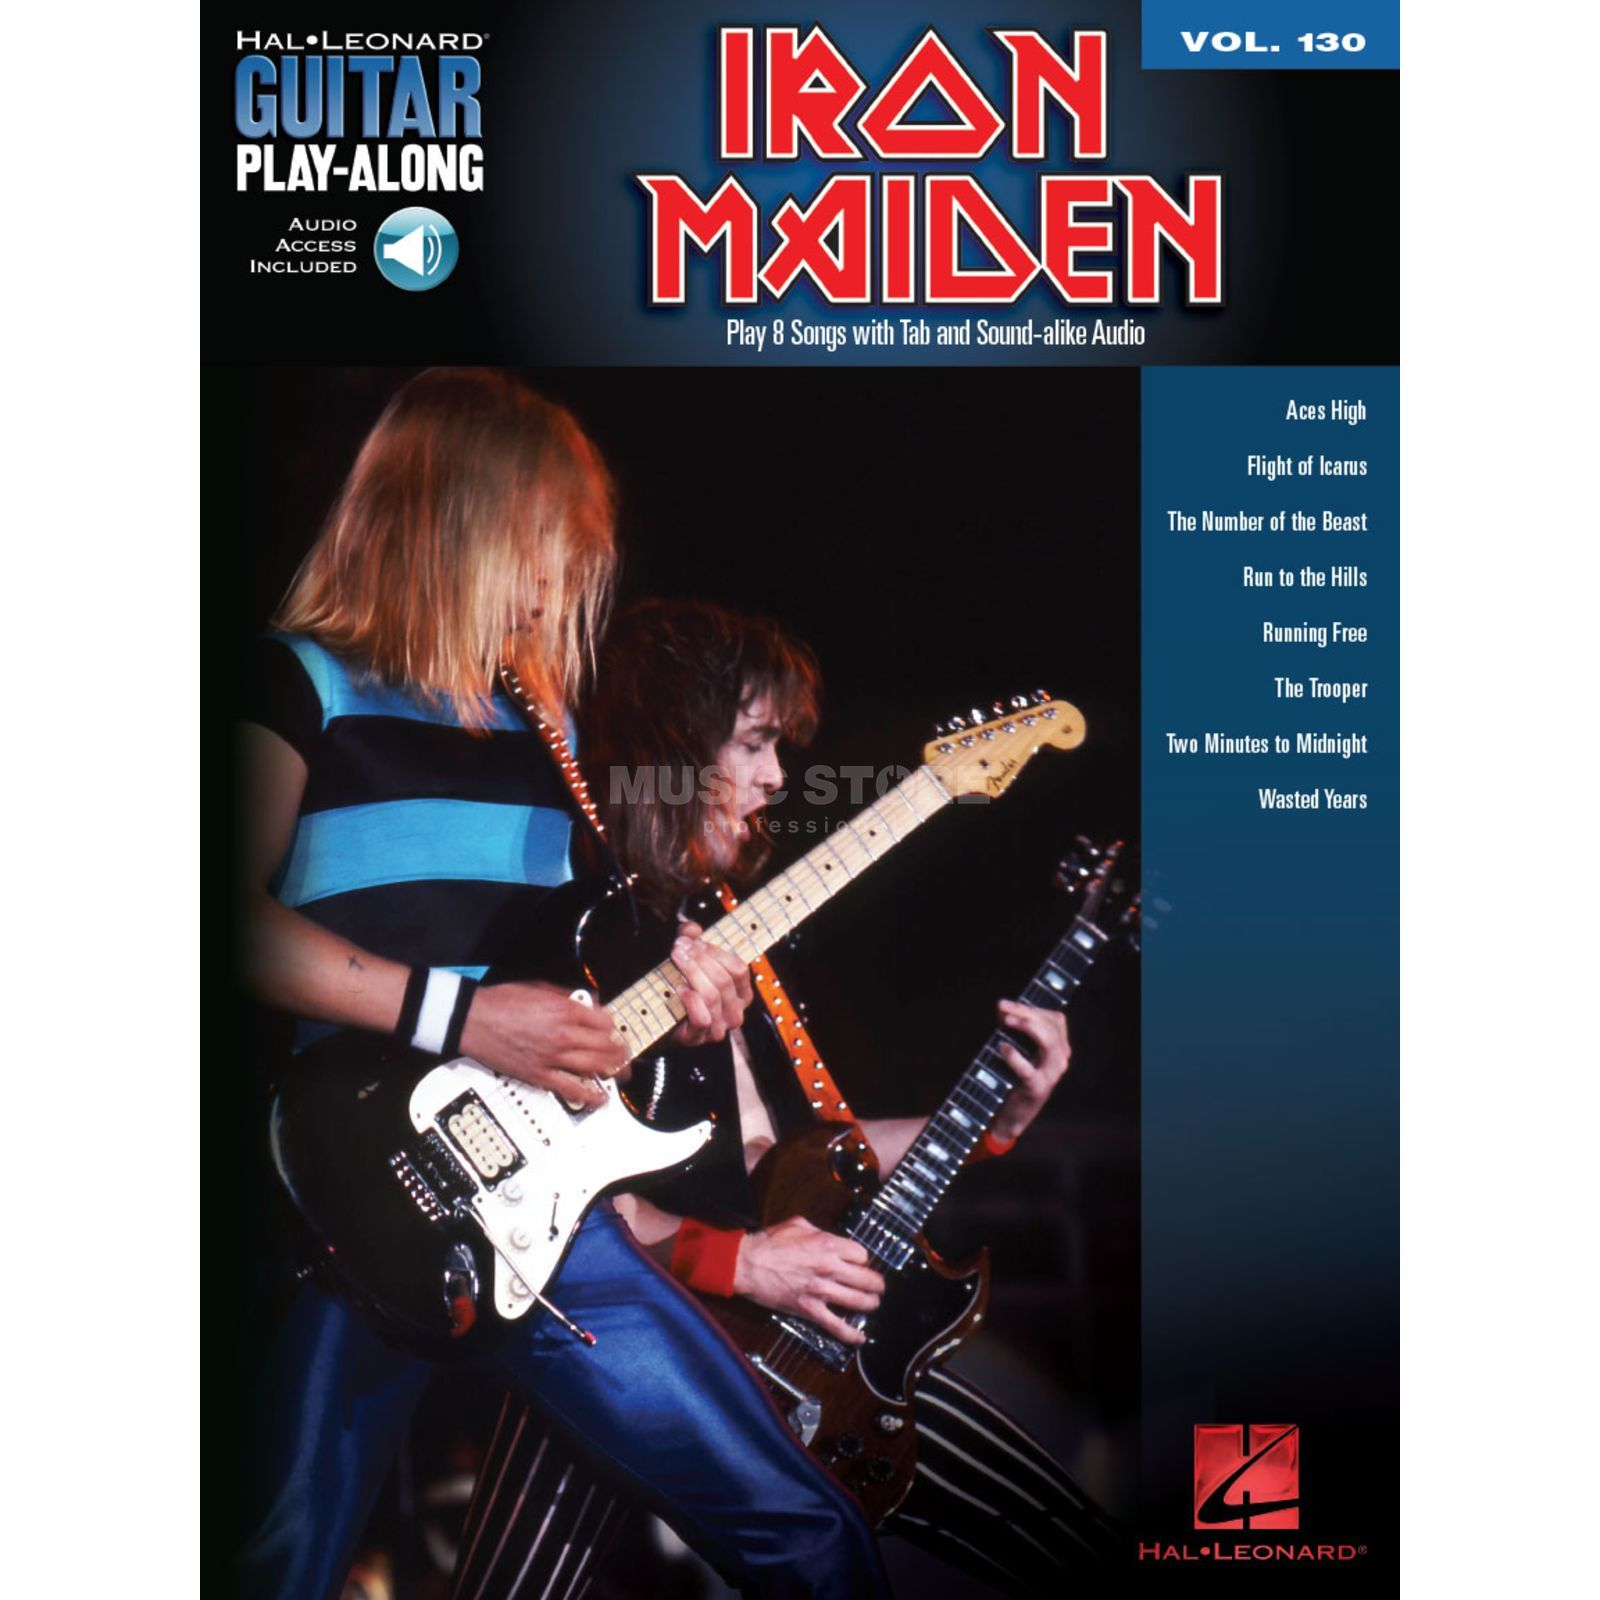 Hal Leonard Guitar Play-Along Volume 130: Iron Maiden Product Image